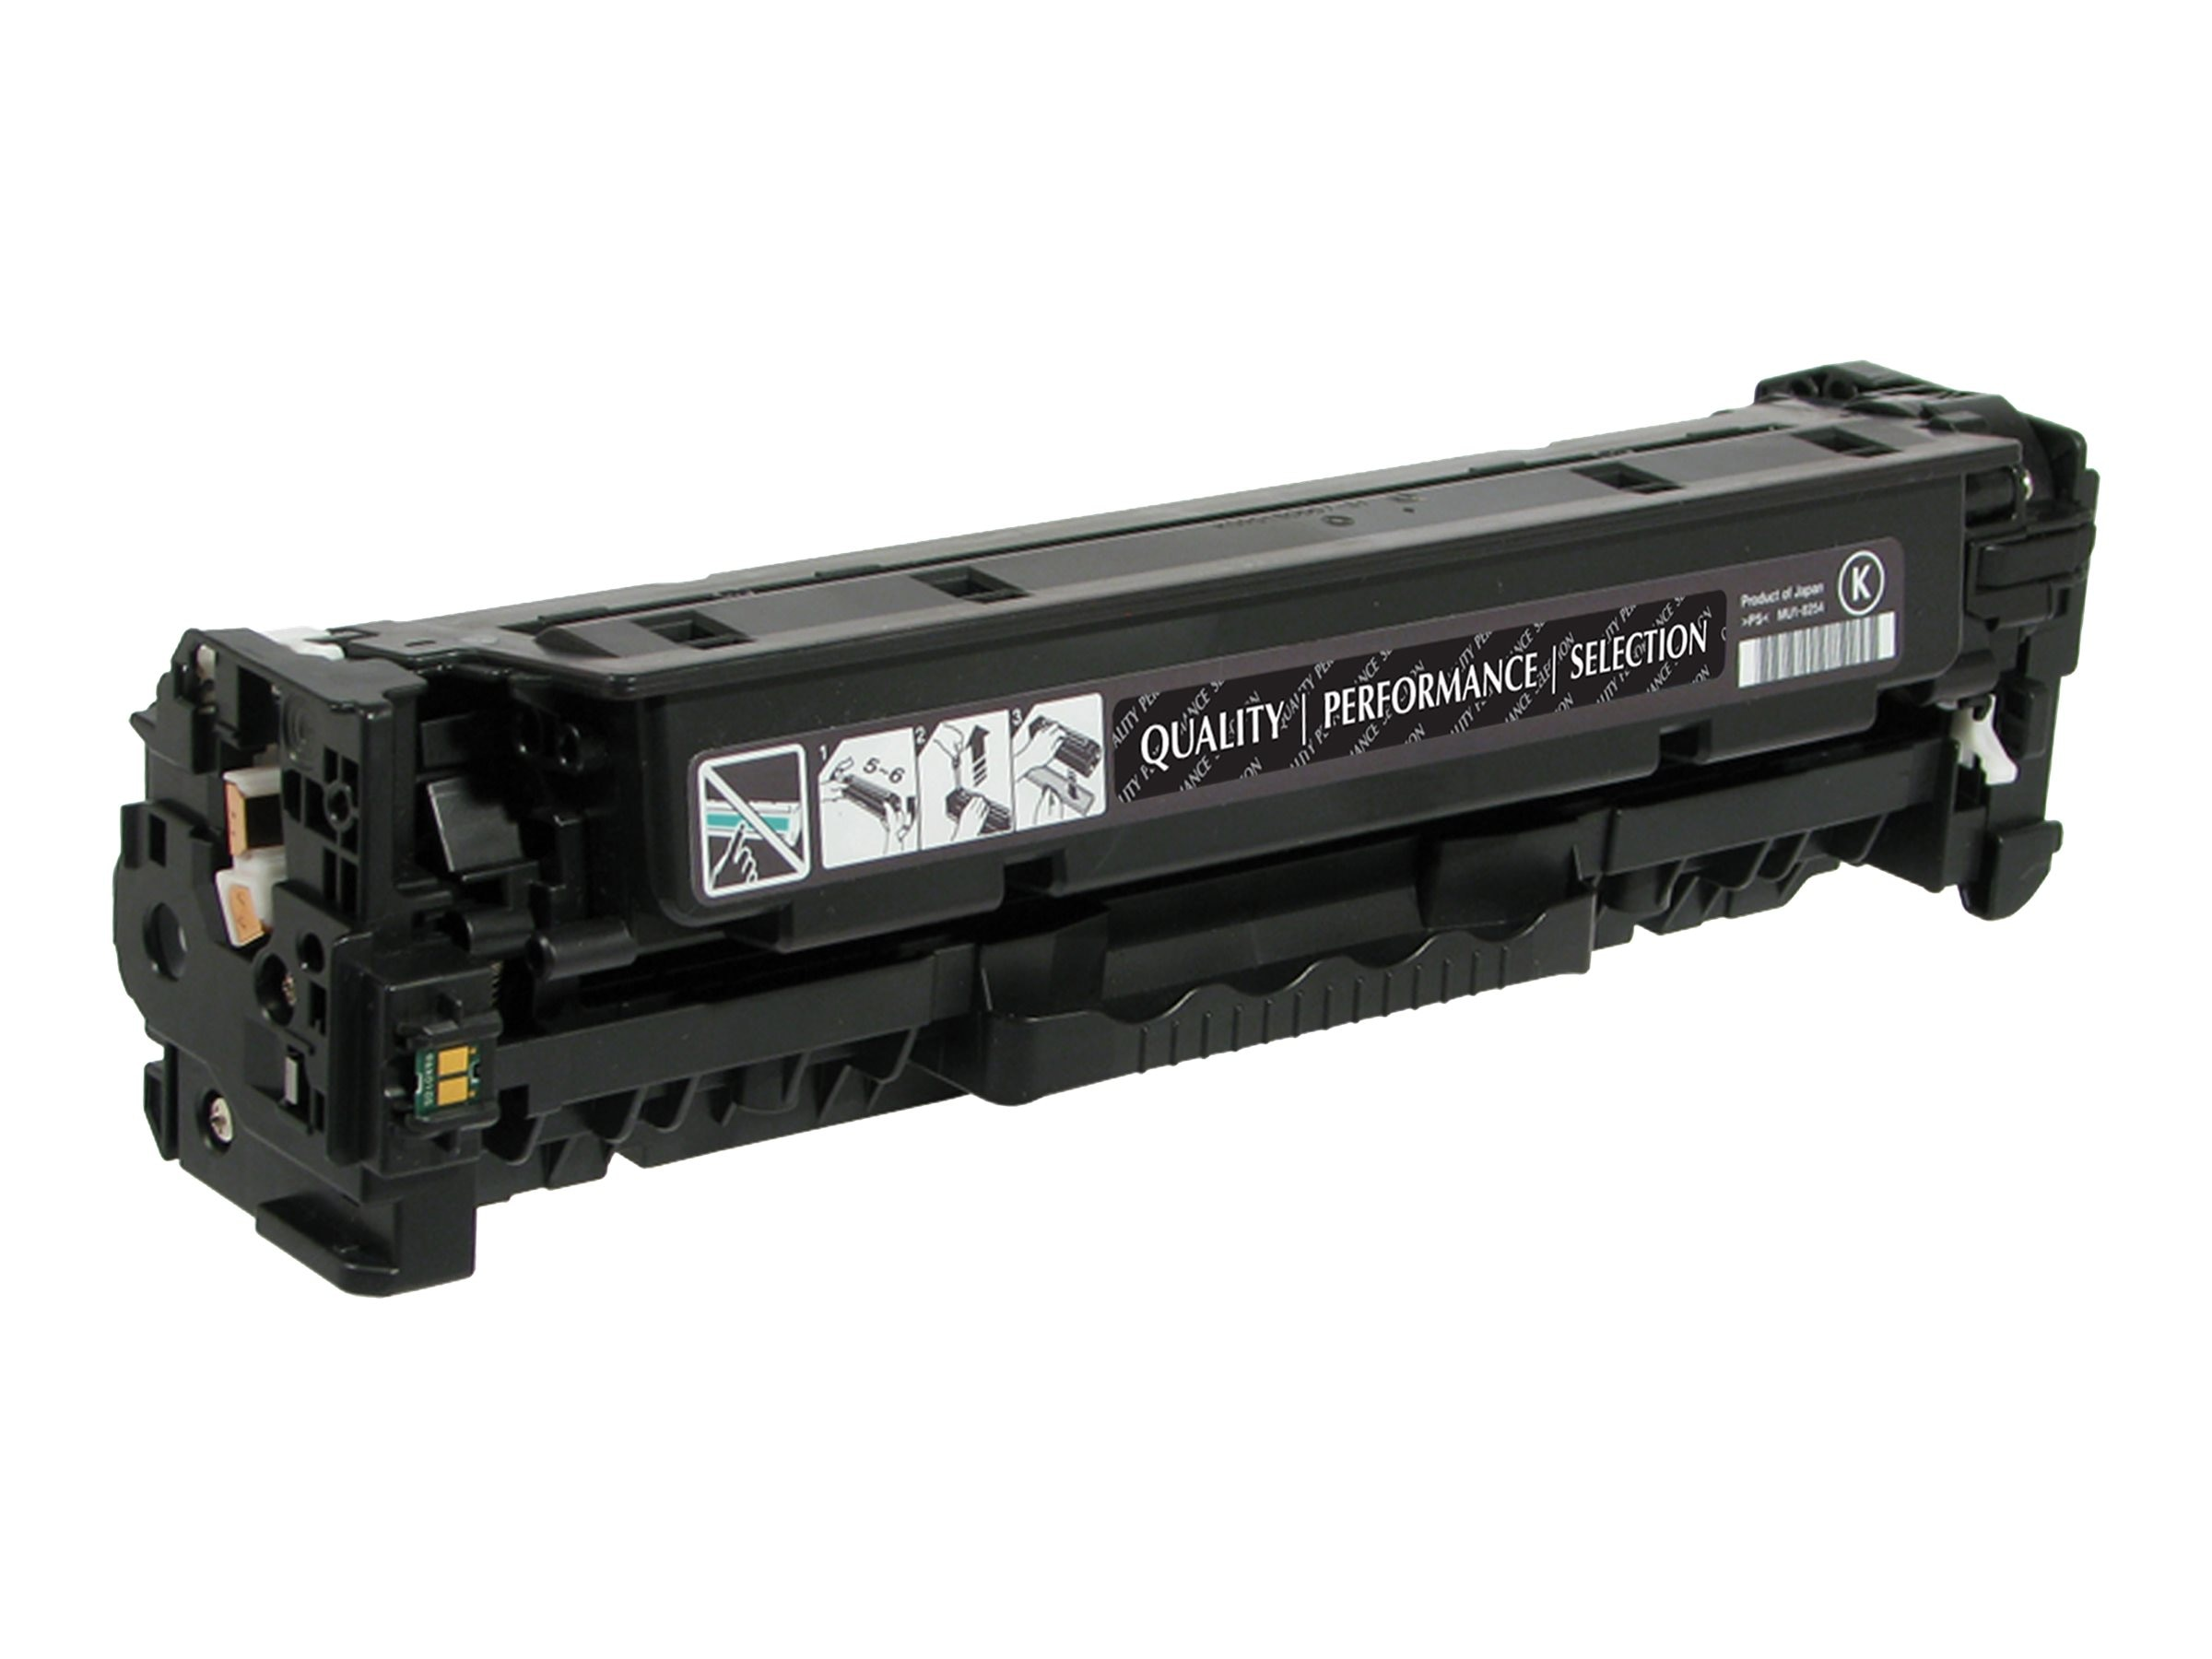 V7 CE410X Black High Yield Toner Cartridge for HP LaserJet Pro Color M375 M451, V7M451BX